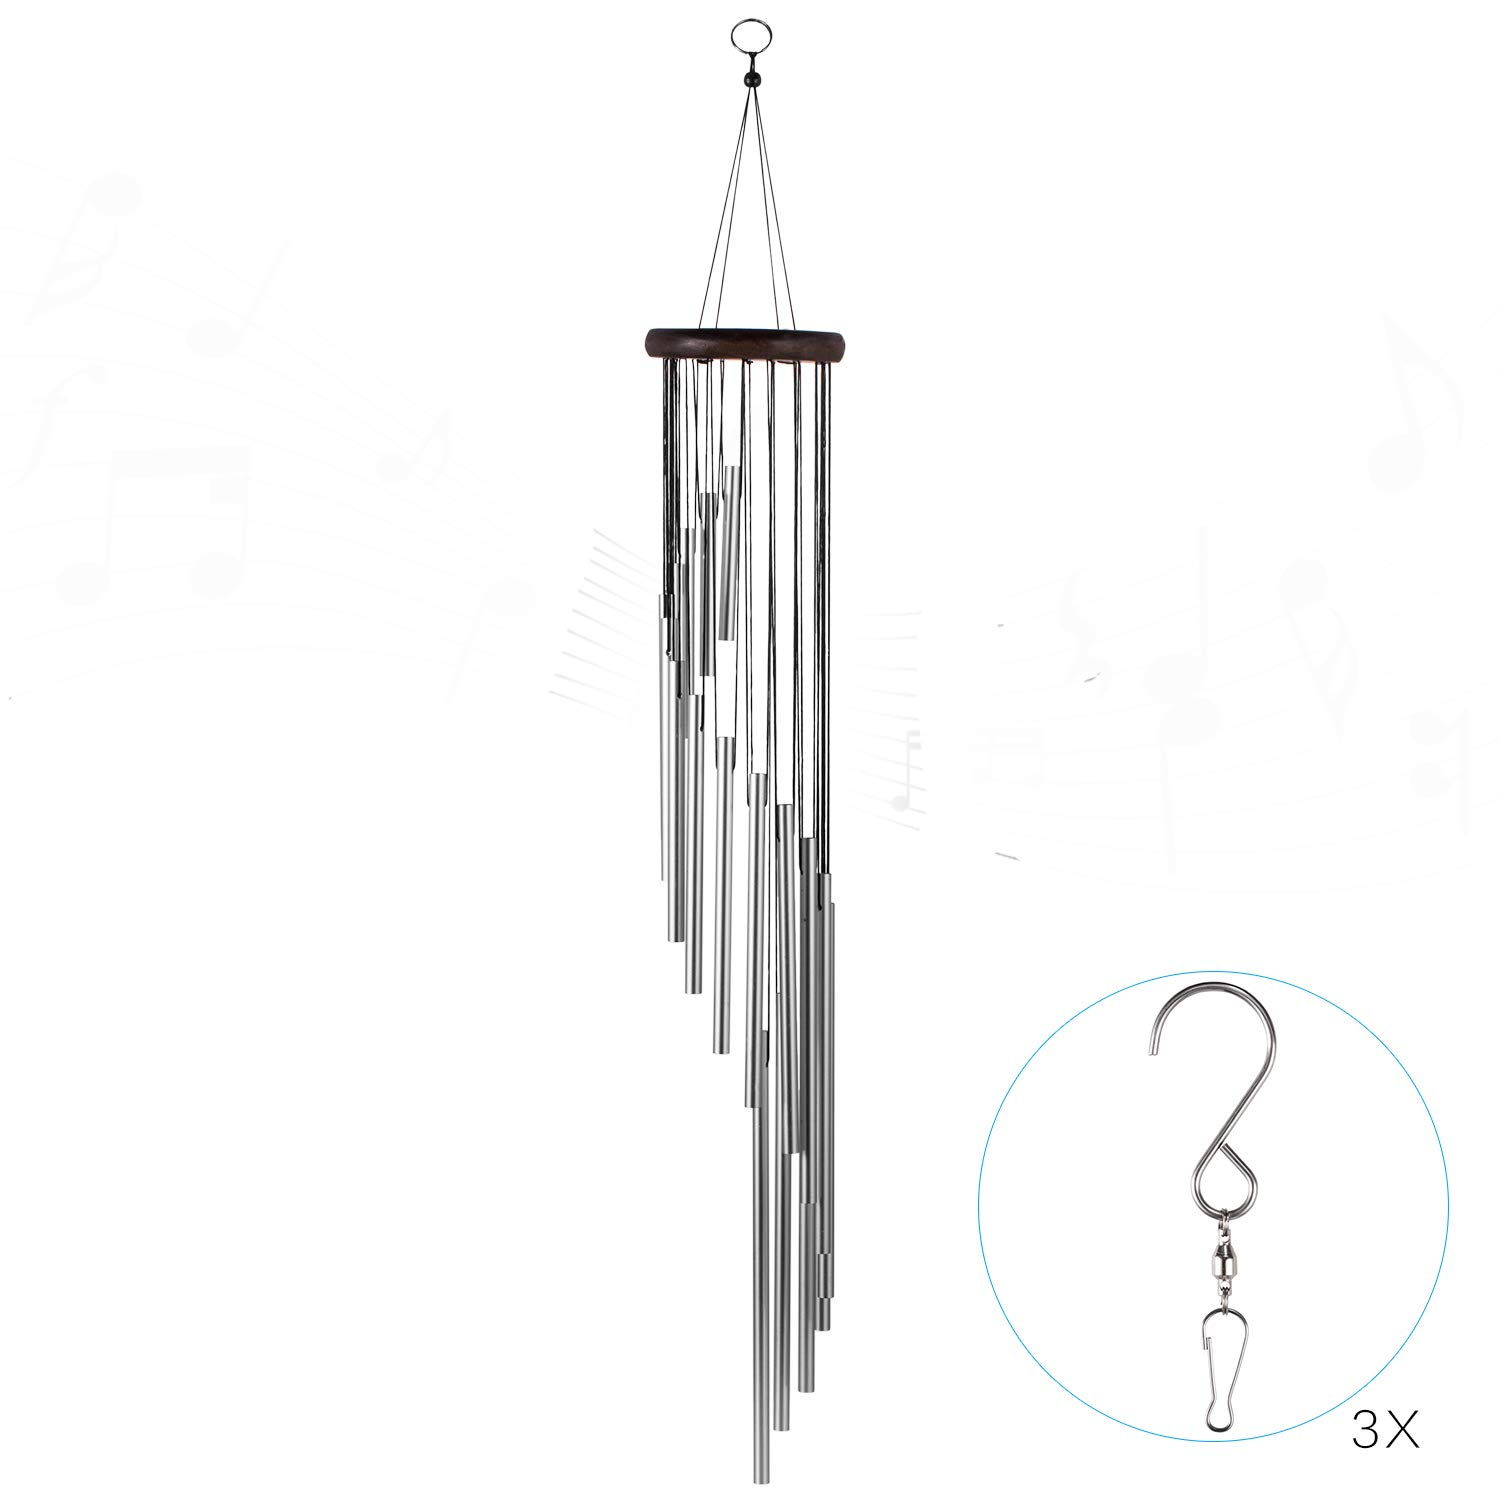 occer Wind Chimes 18 Different Length Tubes Amazing Grace Large Wind Chime with Hook, Decor for Garden, Porch, Balcony,Outdoor & Indoor